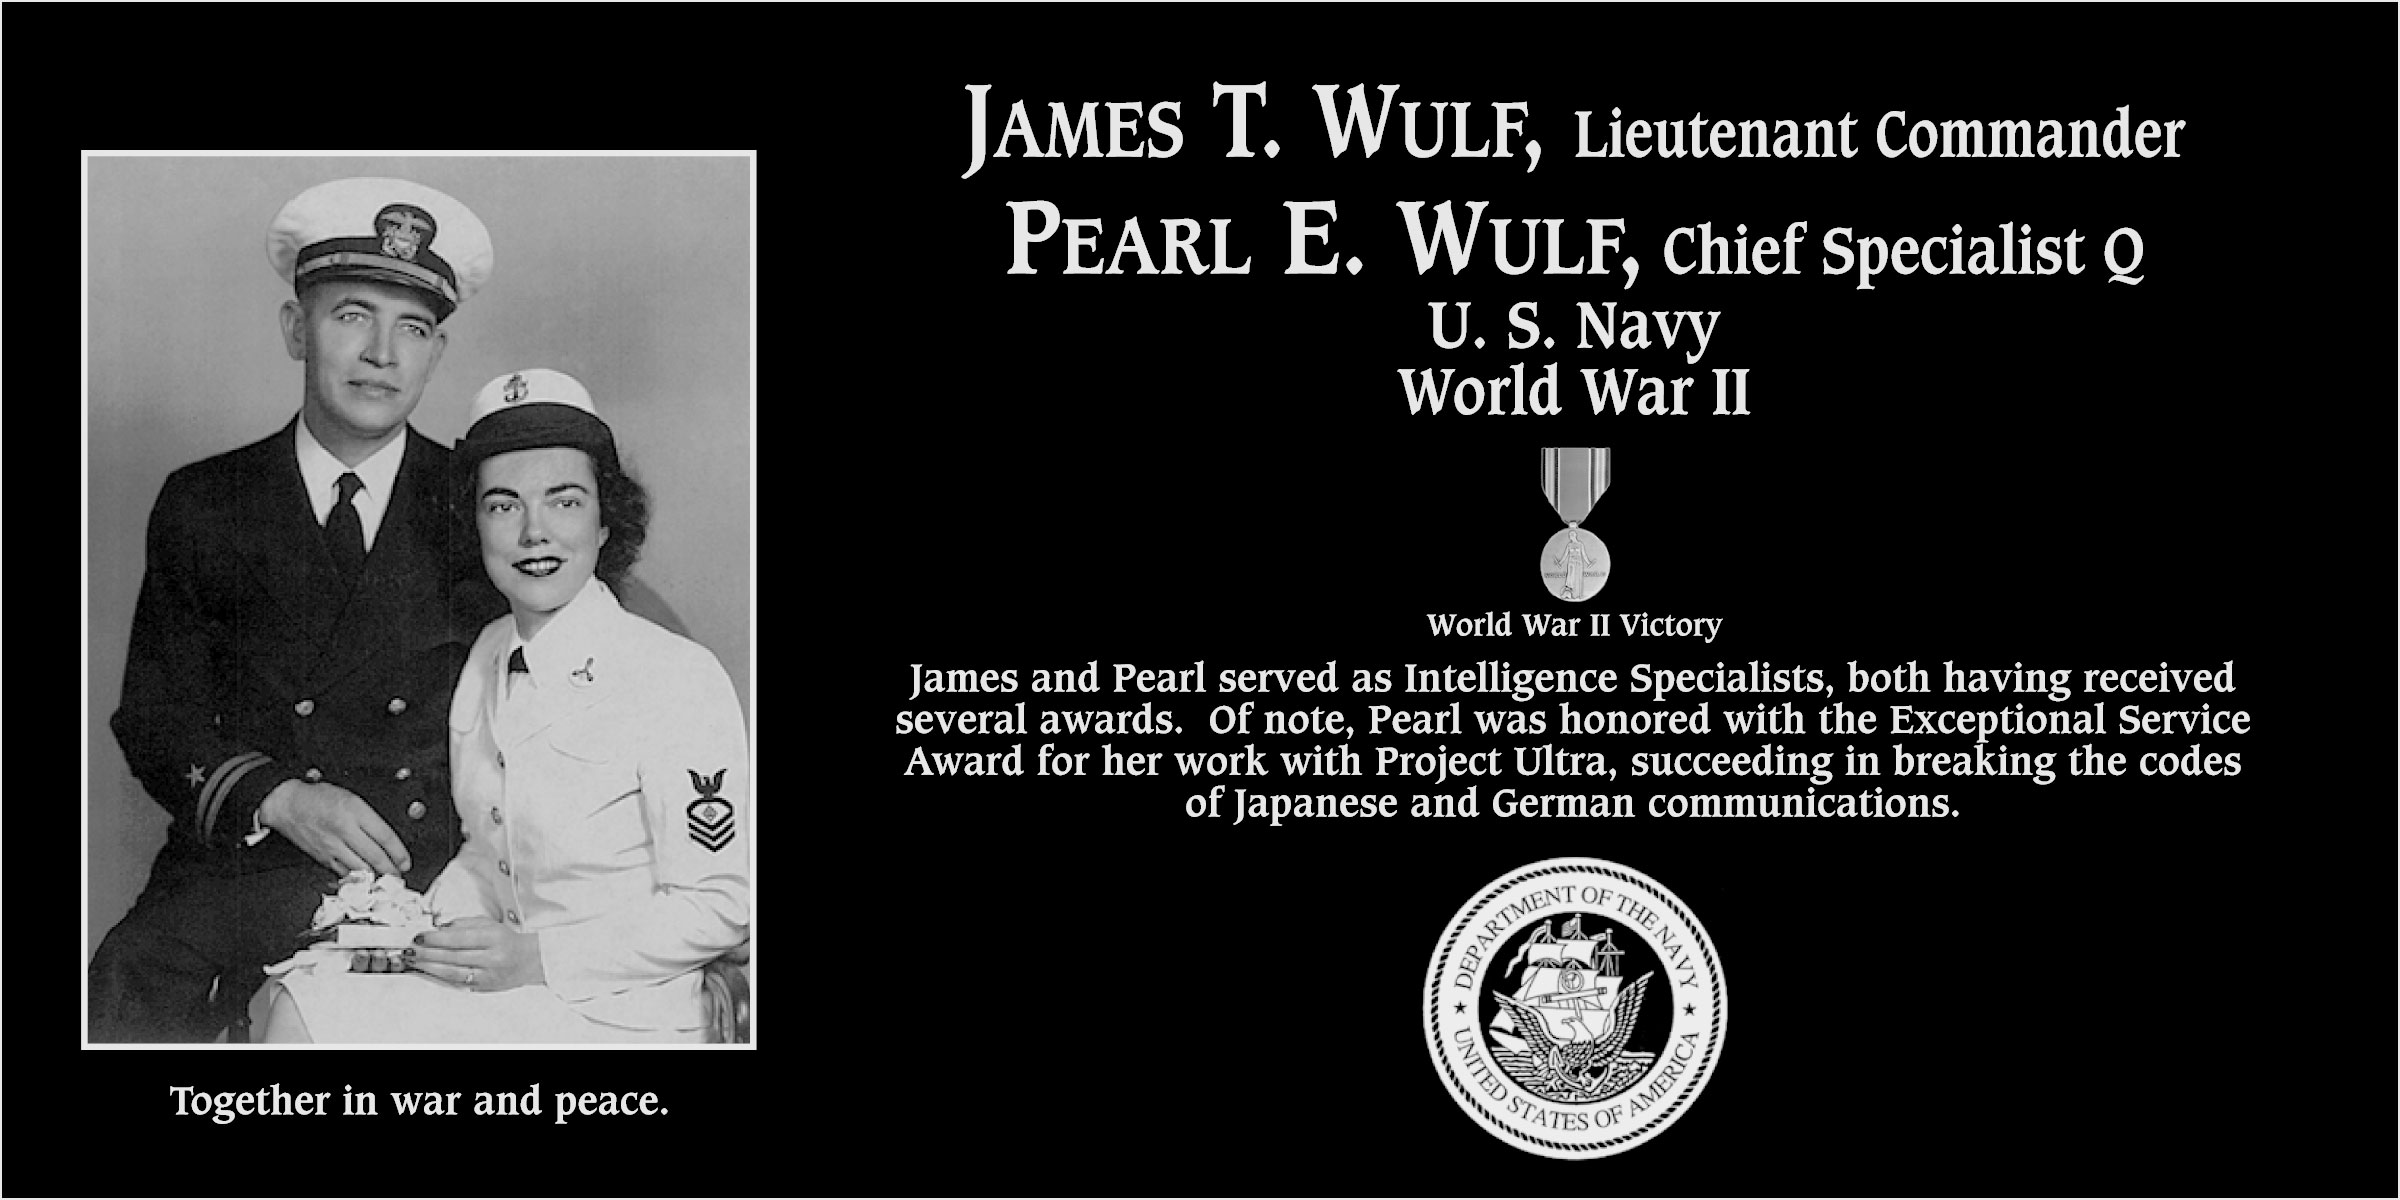 James T. Wulf